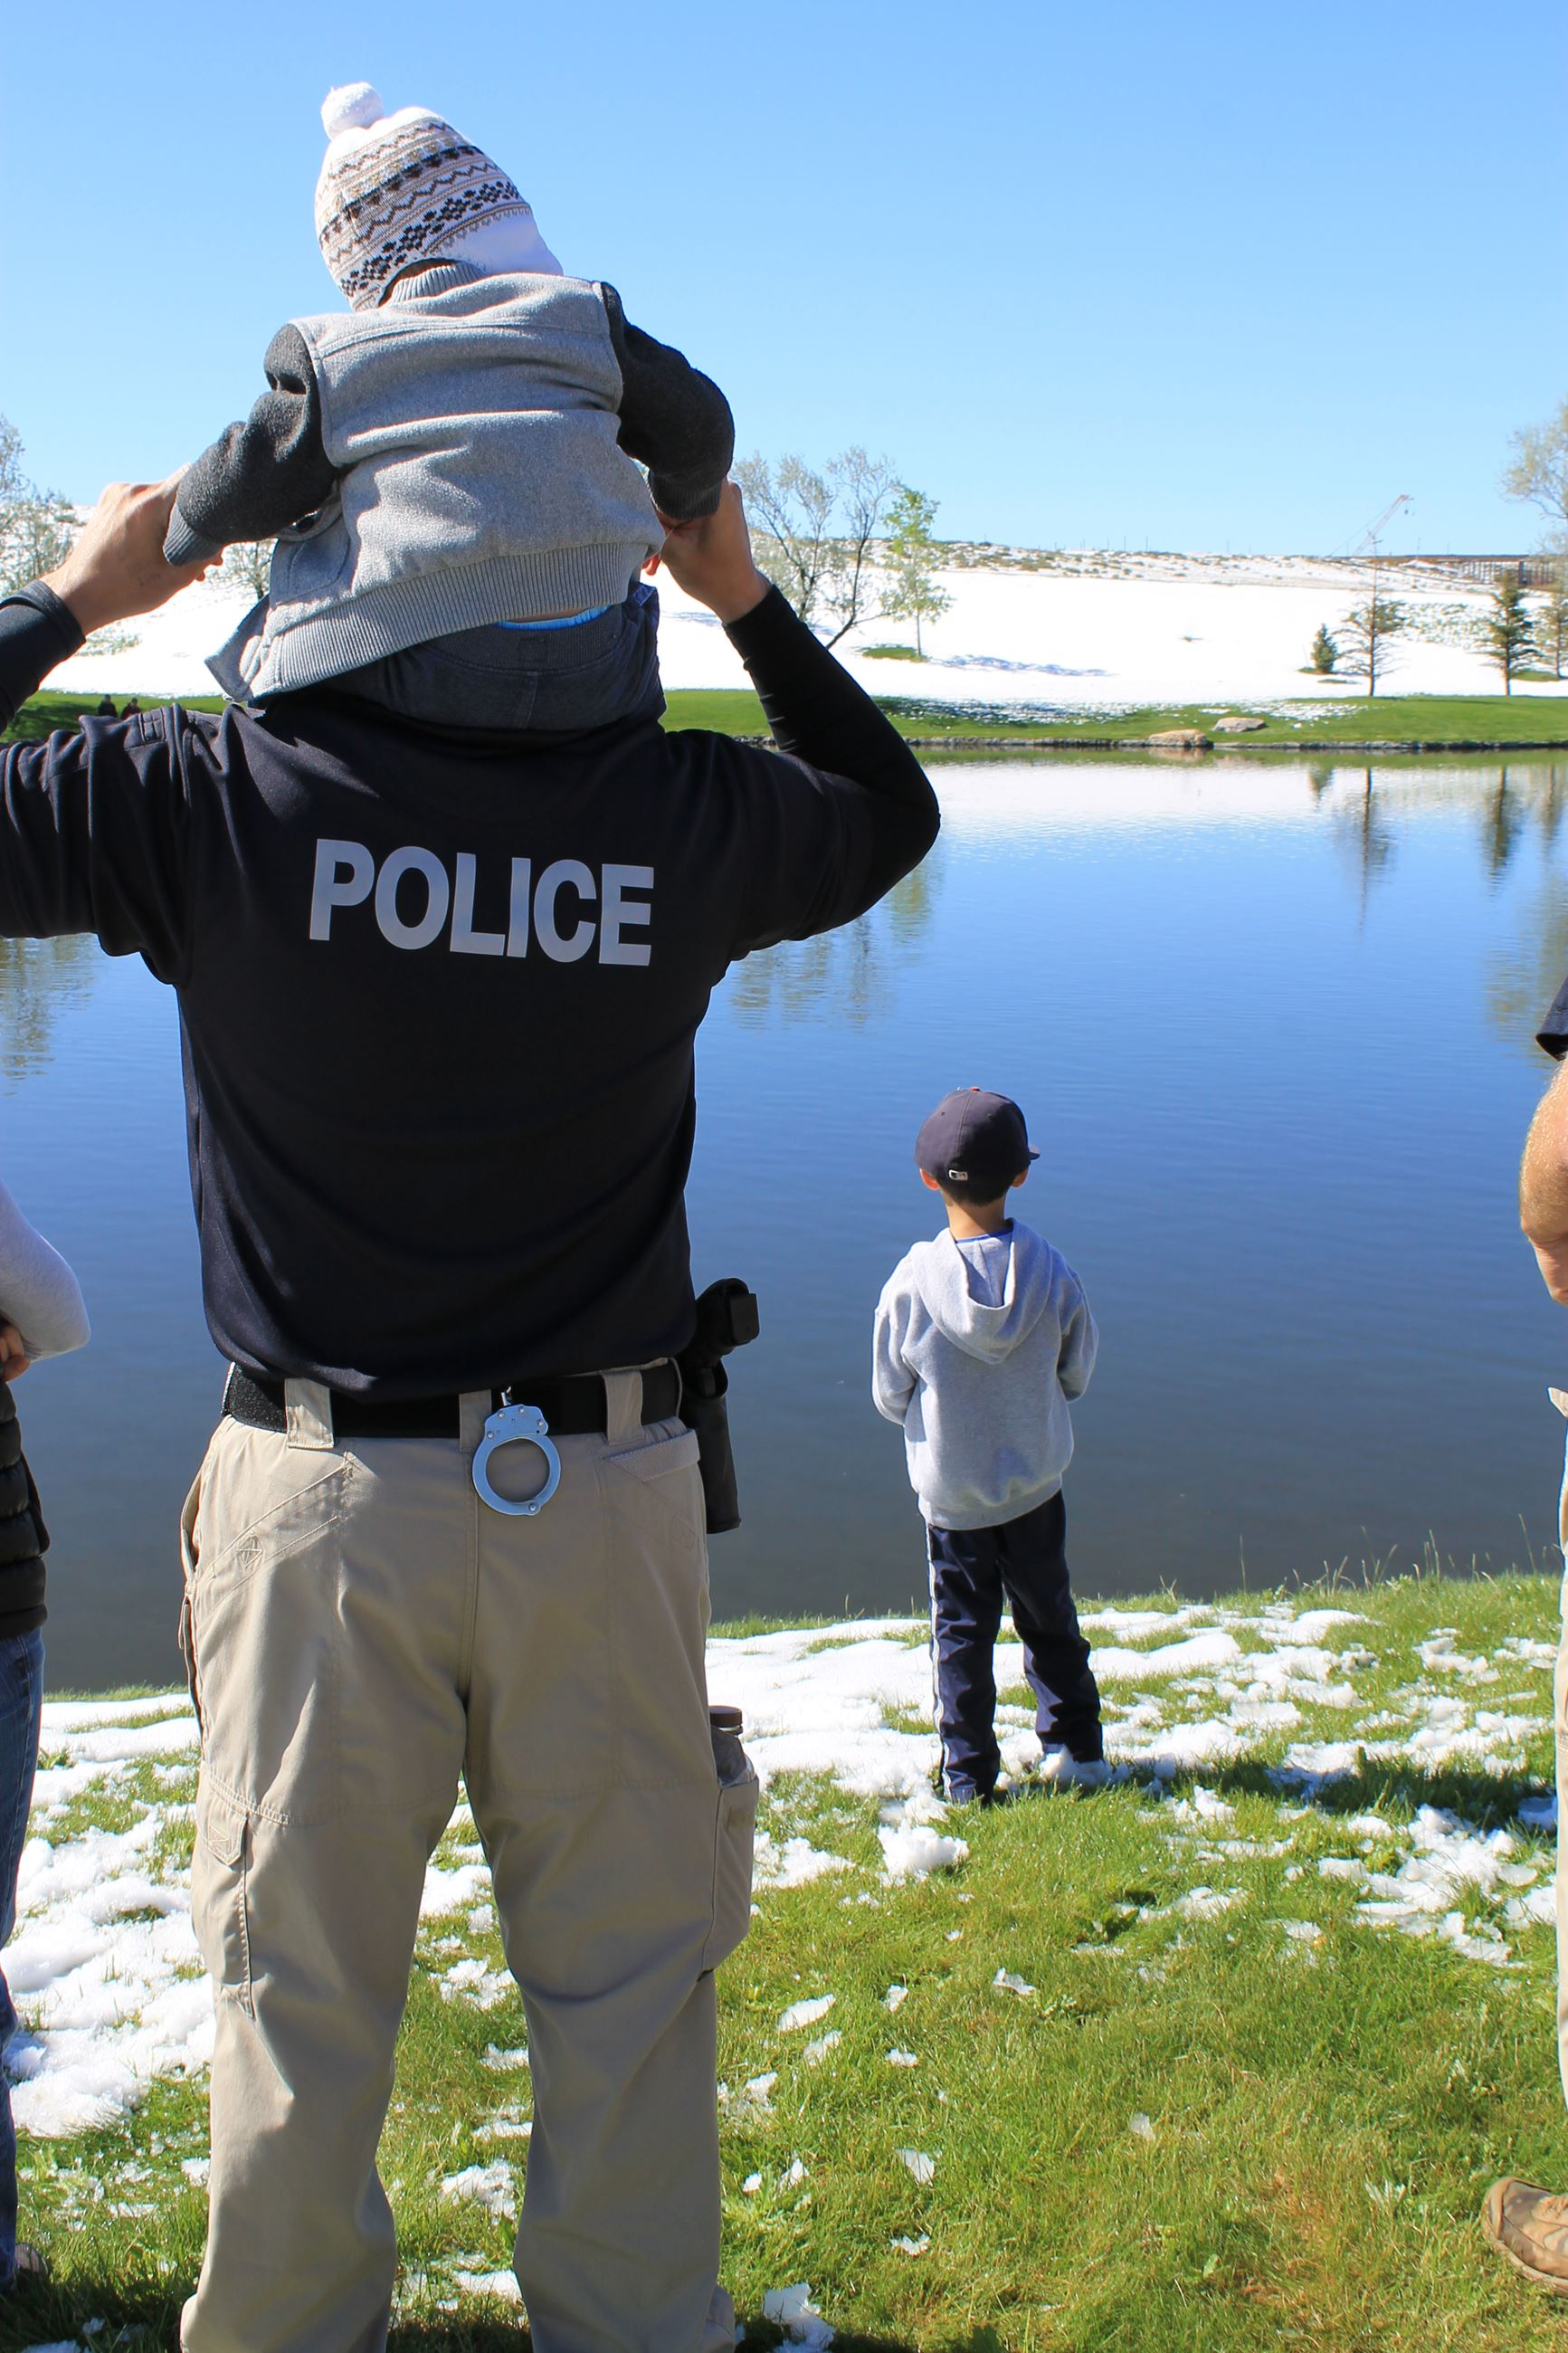 Small child on Police Oficer shoulder looking at pond